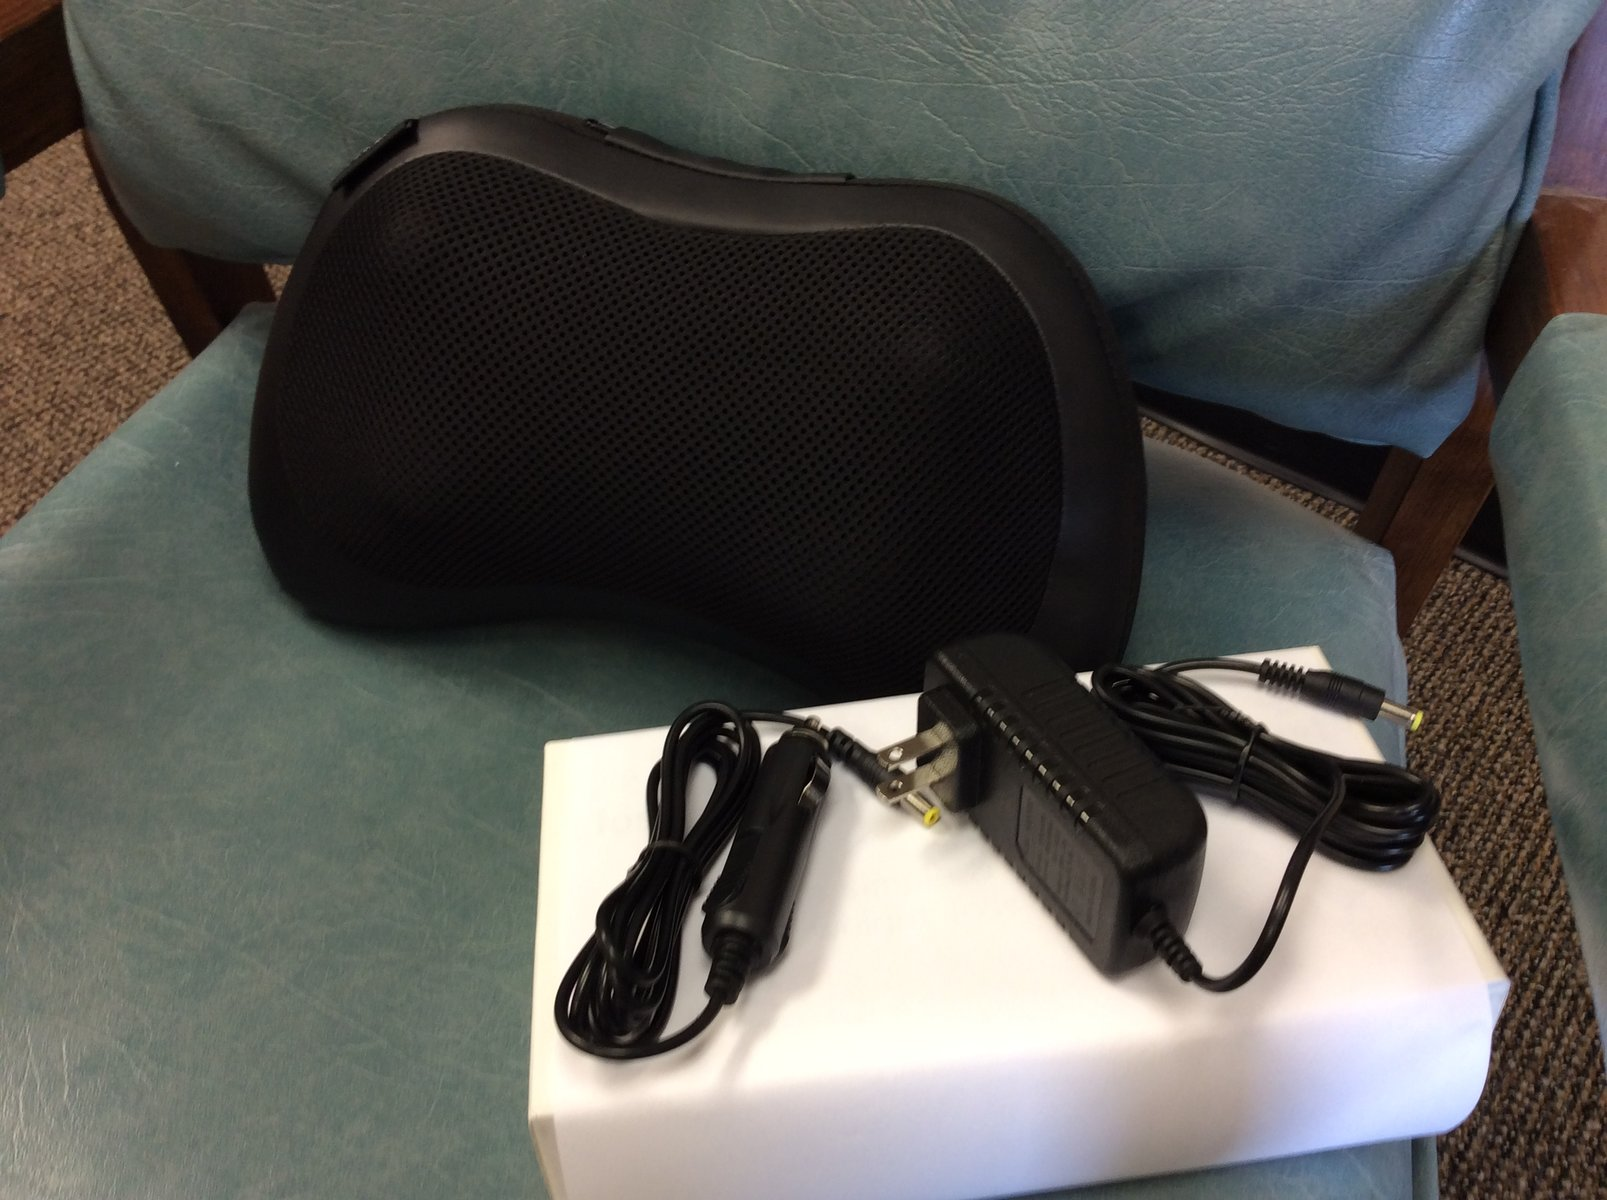 neck and lower back massager with power and car adapter